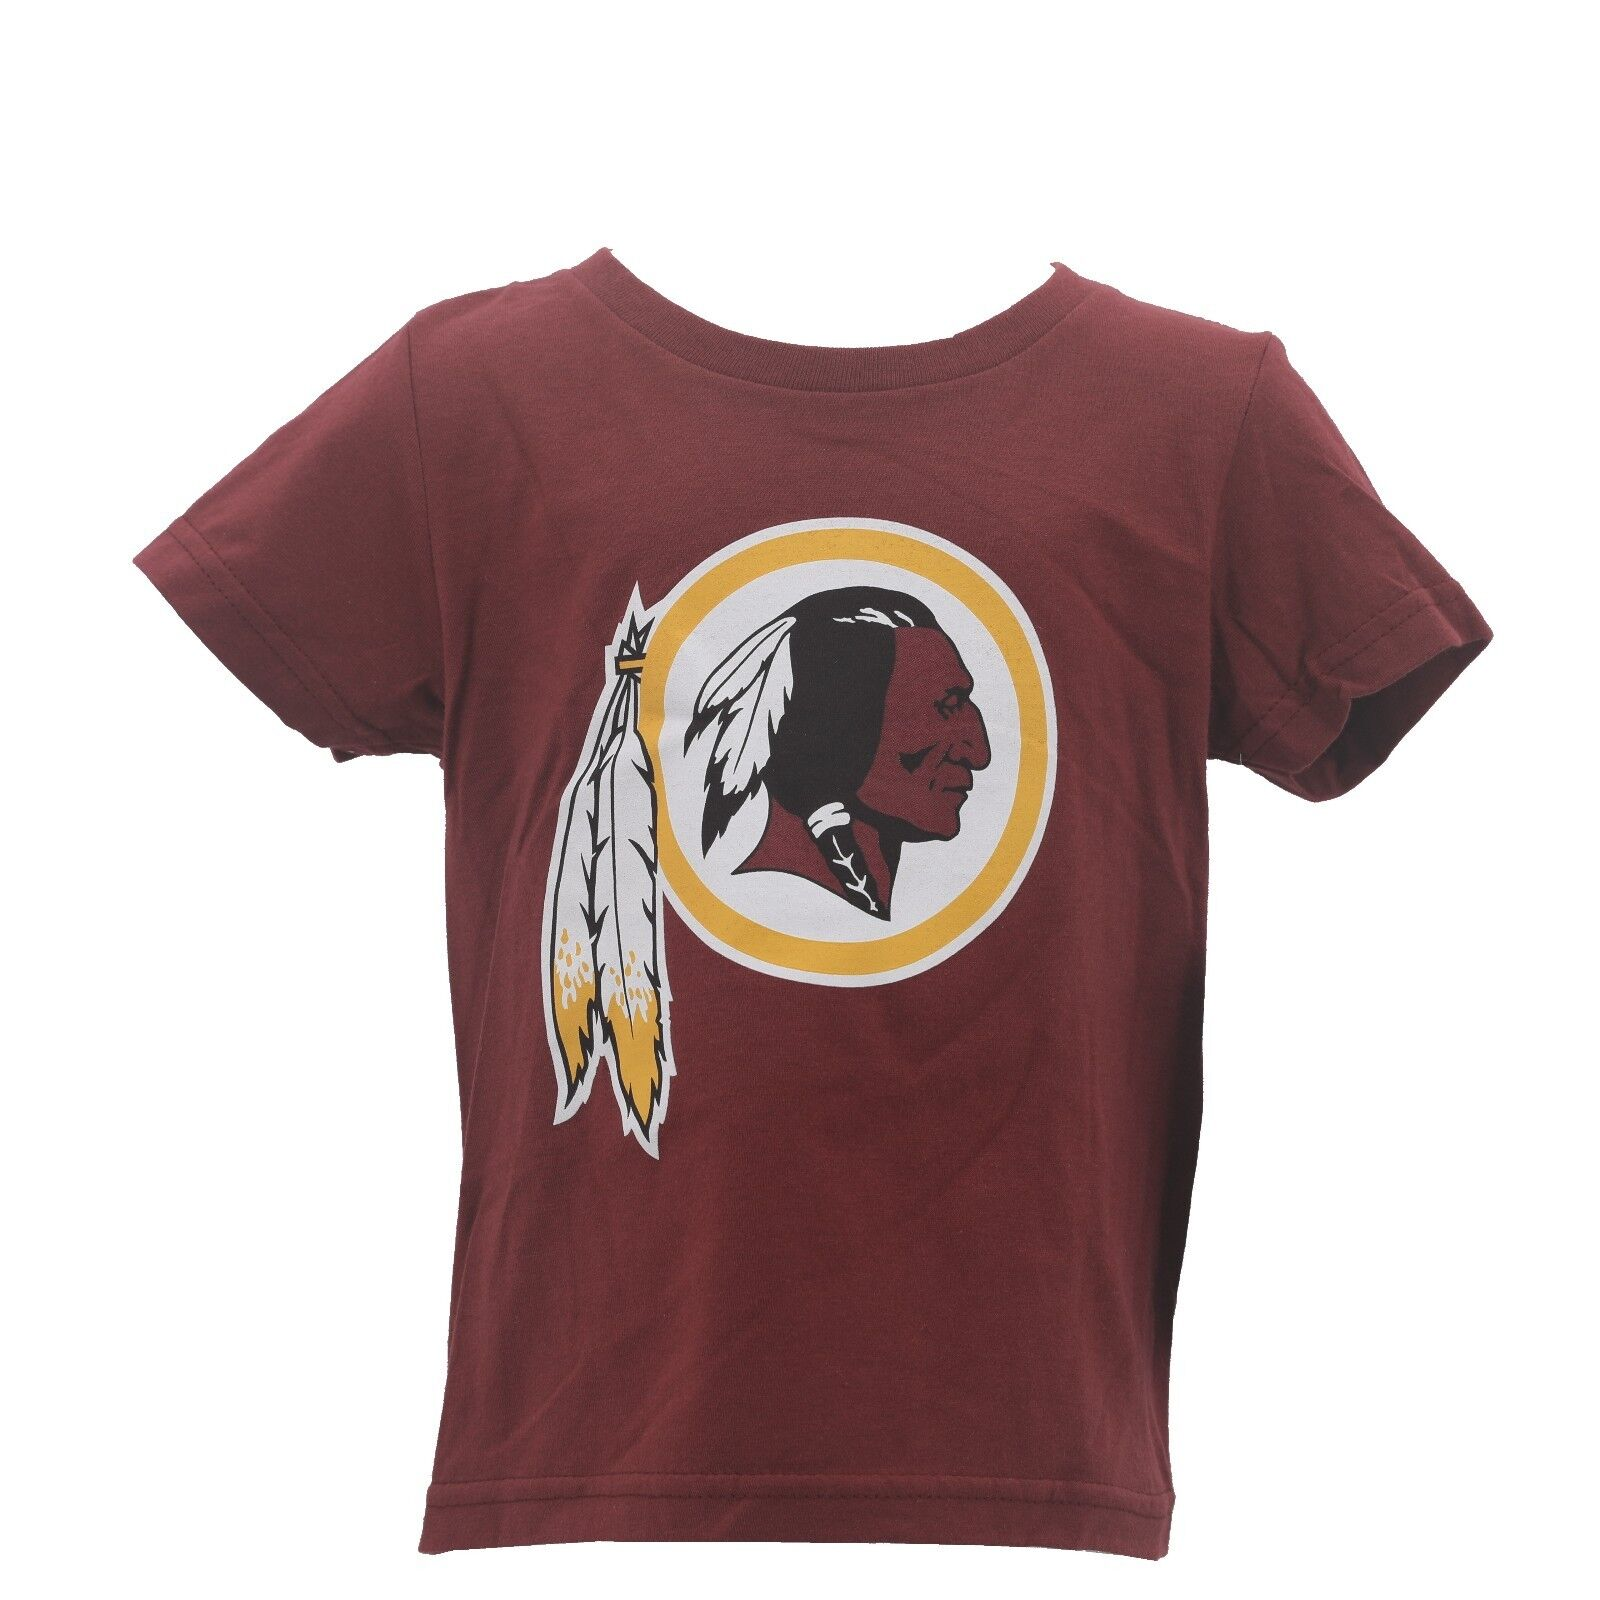 great fit 7bc18 3b36d Details about Washington Redskins Official NFL Apparel Infant & Toddler  T-Shirt New with Tags